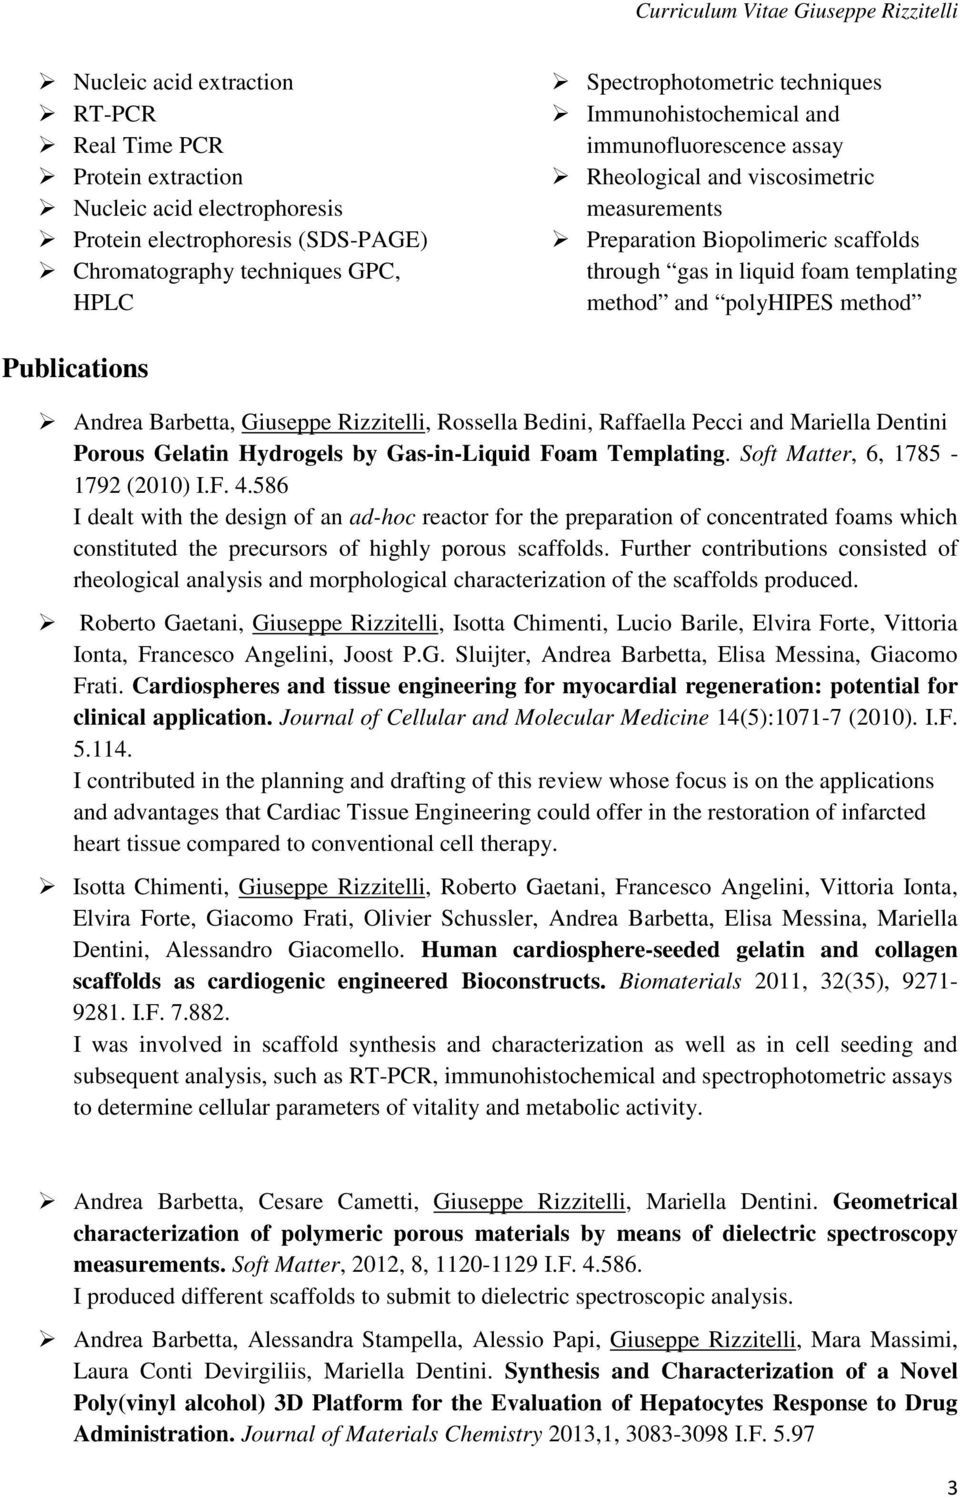 Publications Andrea Barbetta, Giuseppe Rizzitelli, Rossella Bedini, Raffaella Pecci and Mariella Dentini Porous Gelatin Hydrogels by Gas-in-Liquid Foam Templating. Soft Matter, 6, 1785-1792 (2010) I.